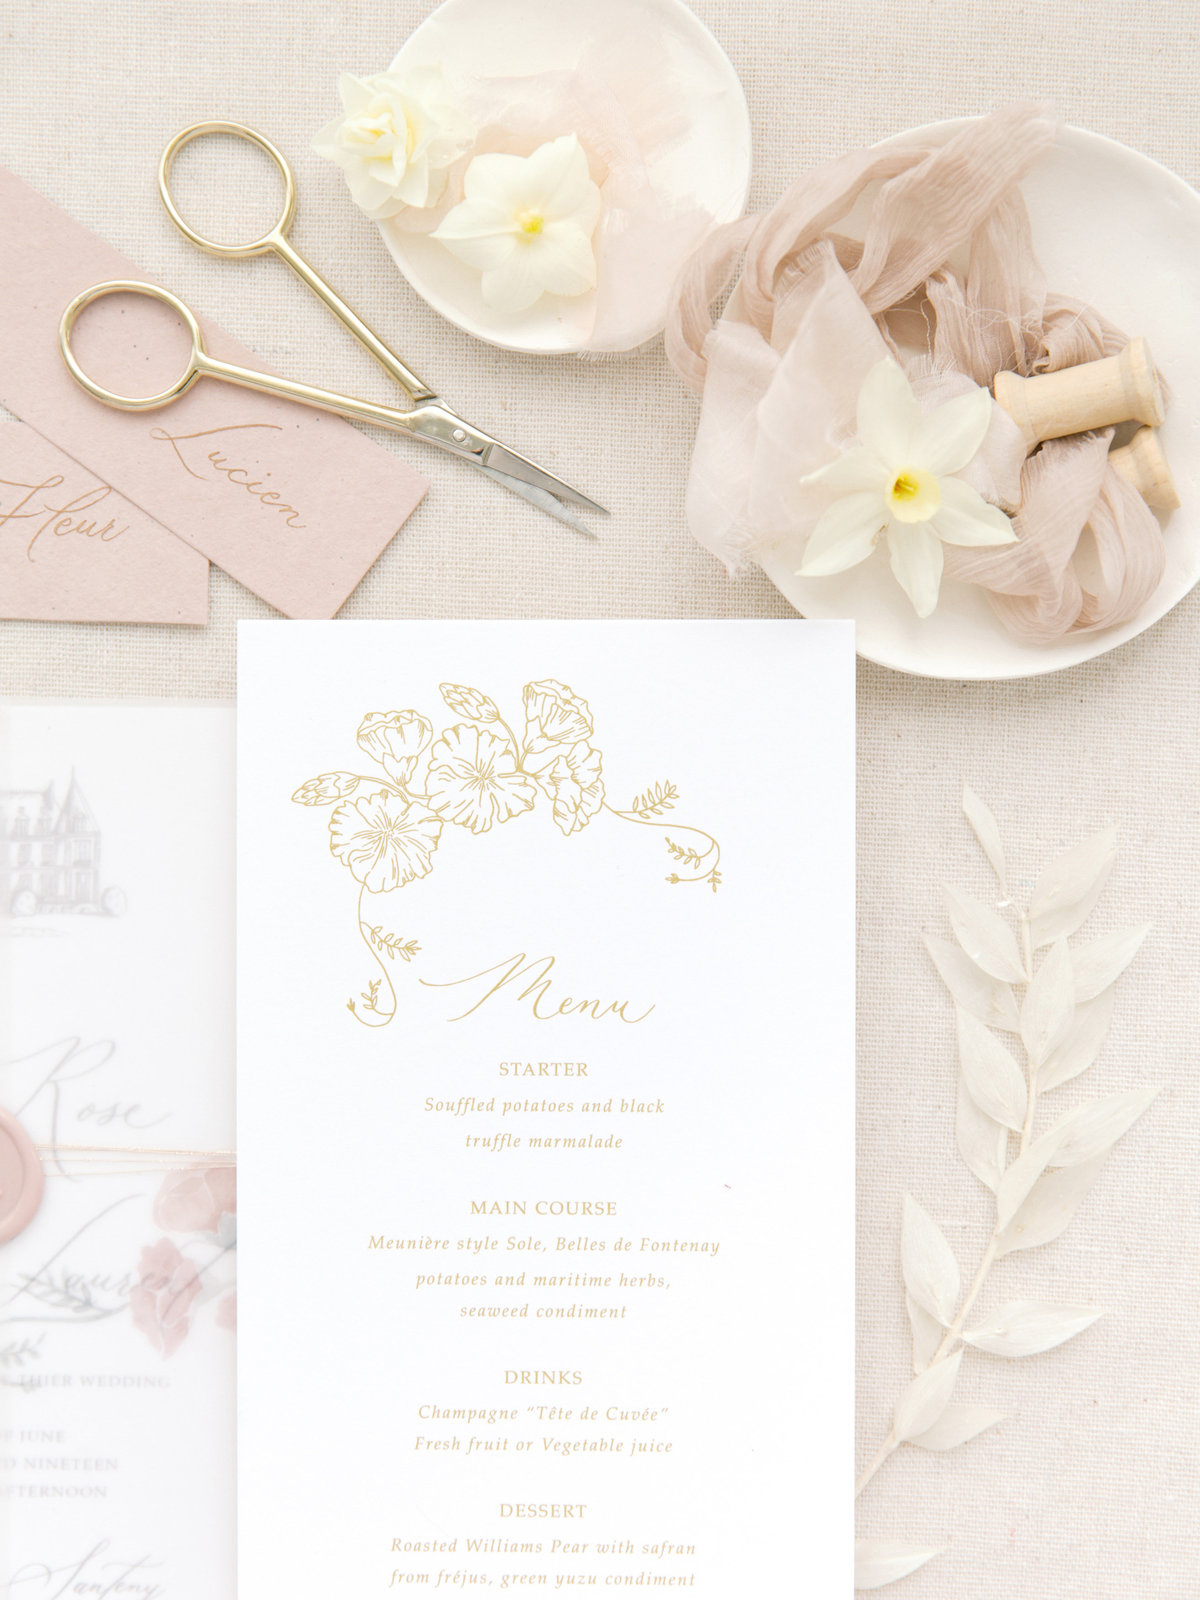 Luxurious french chateau wedding amelia soegijono0047